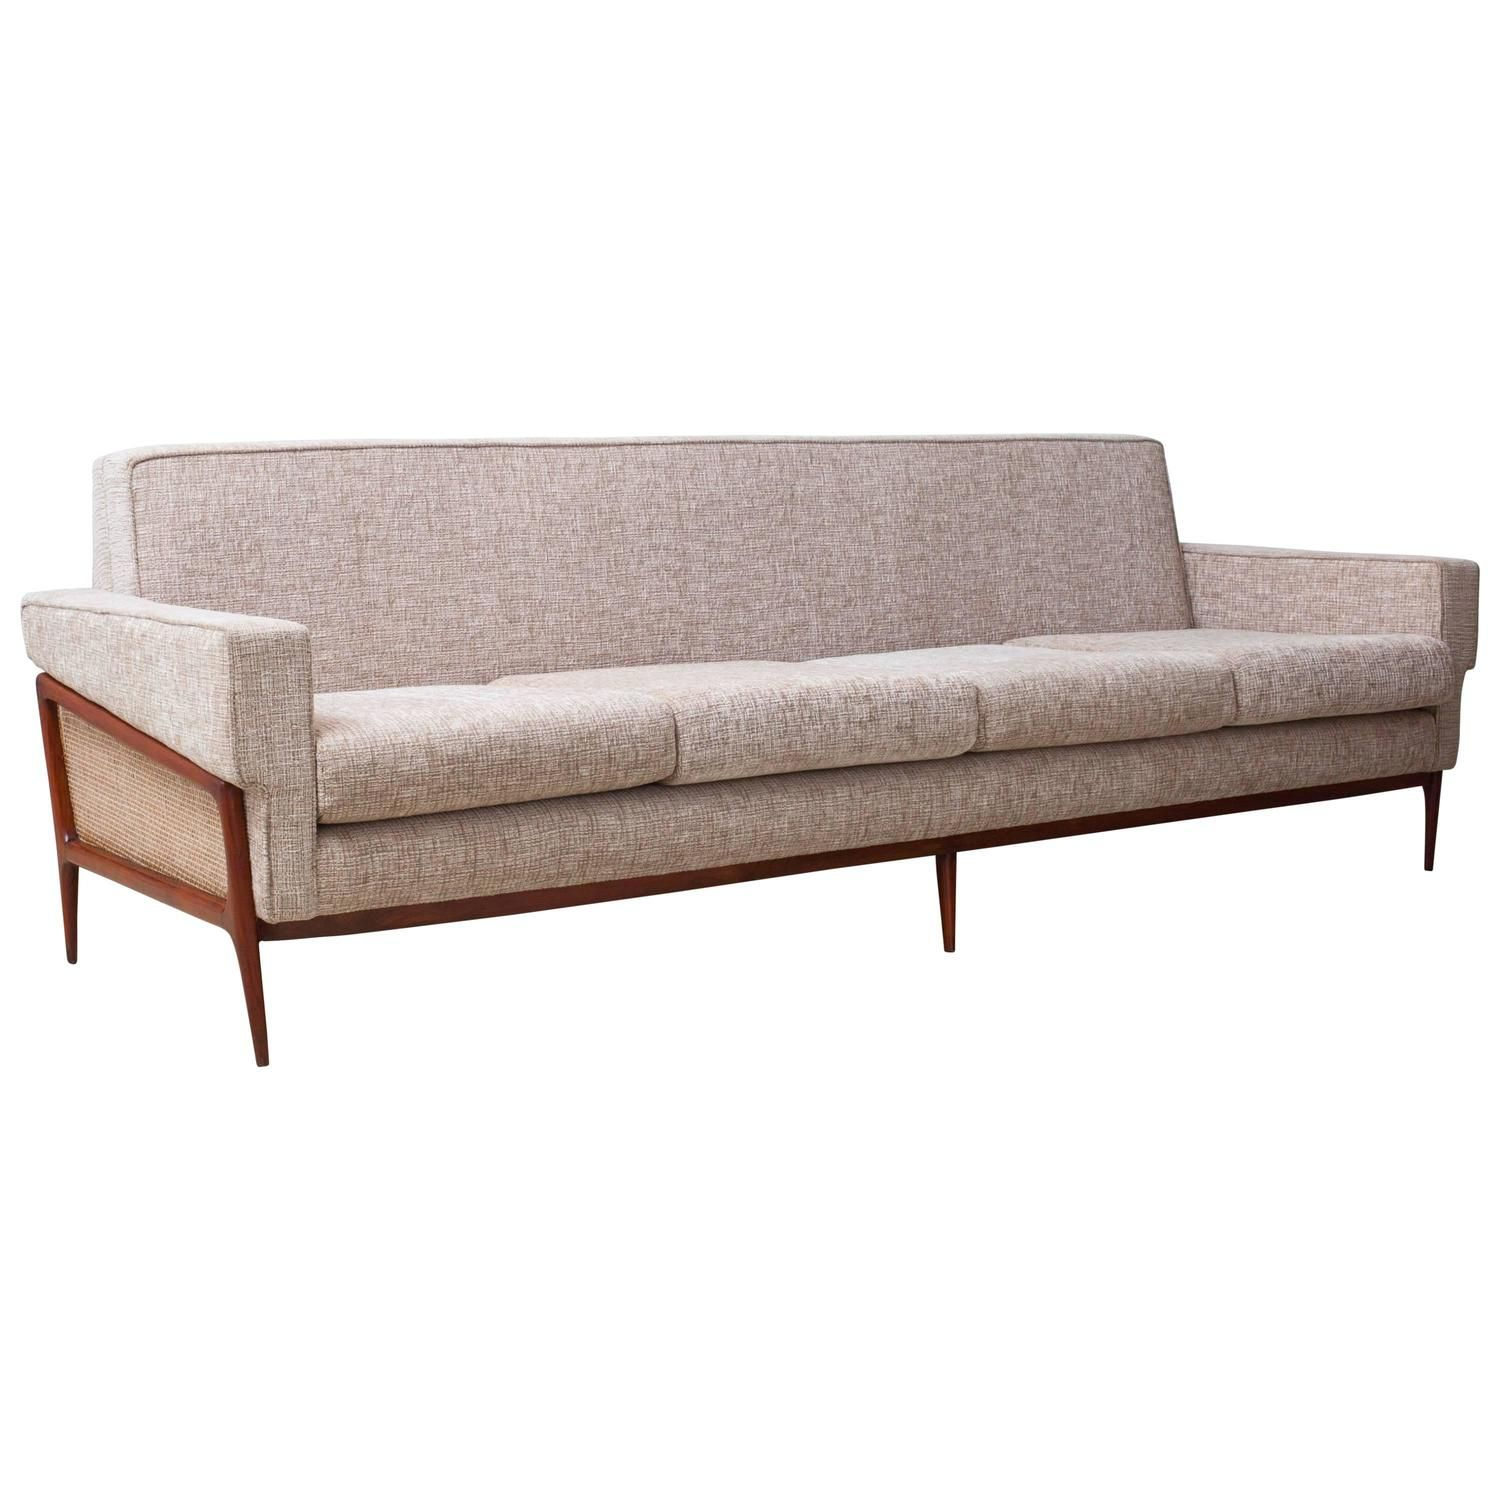 unique furniture for sale. Giuseppe Scapinelli Sofa, Brazil 1960s | From A Unique Collection Of Antique And Modern Sofas Furniture For Sale E